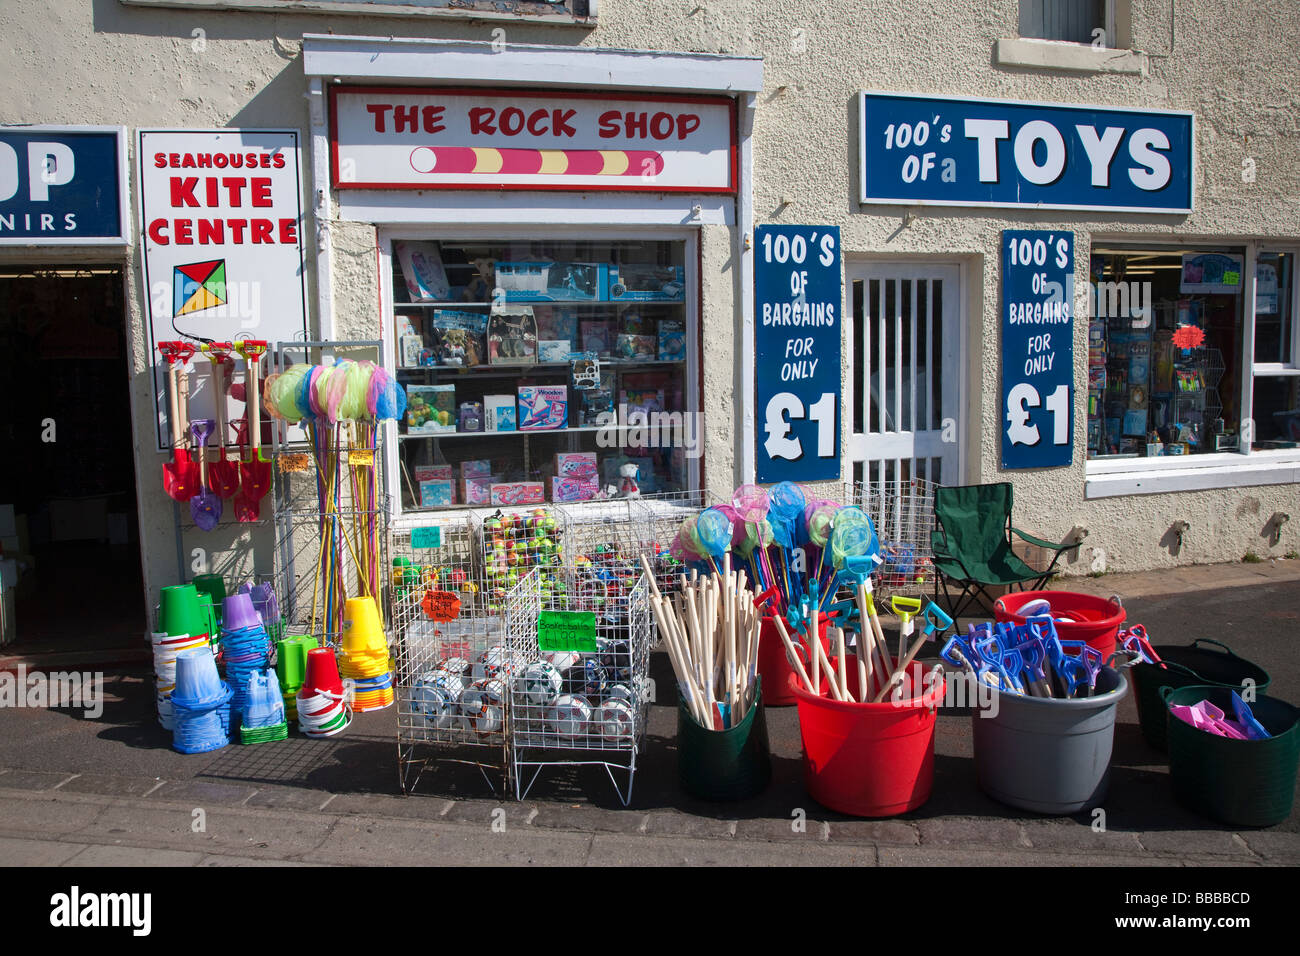 Rock Shop and Toy Seahouses Northumberland Coast - Stock Image